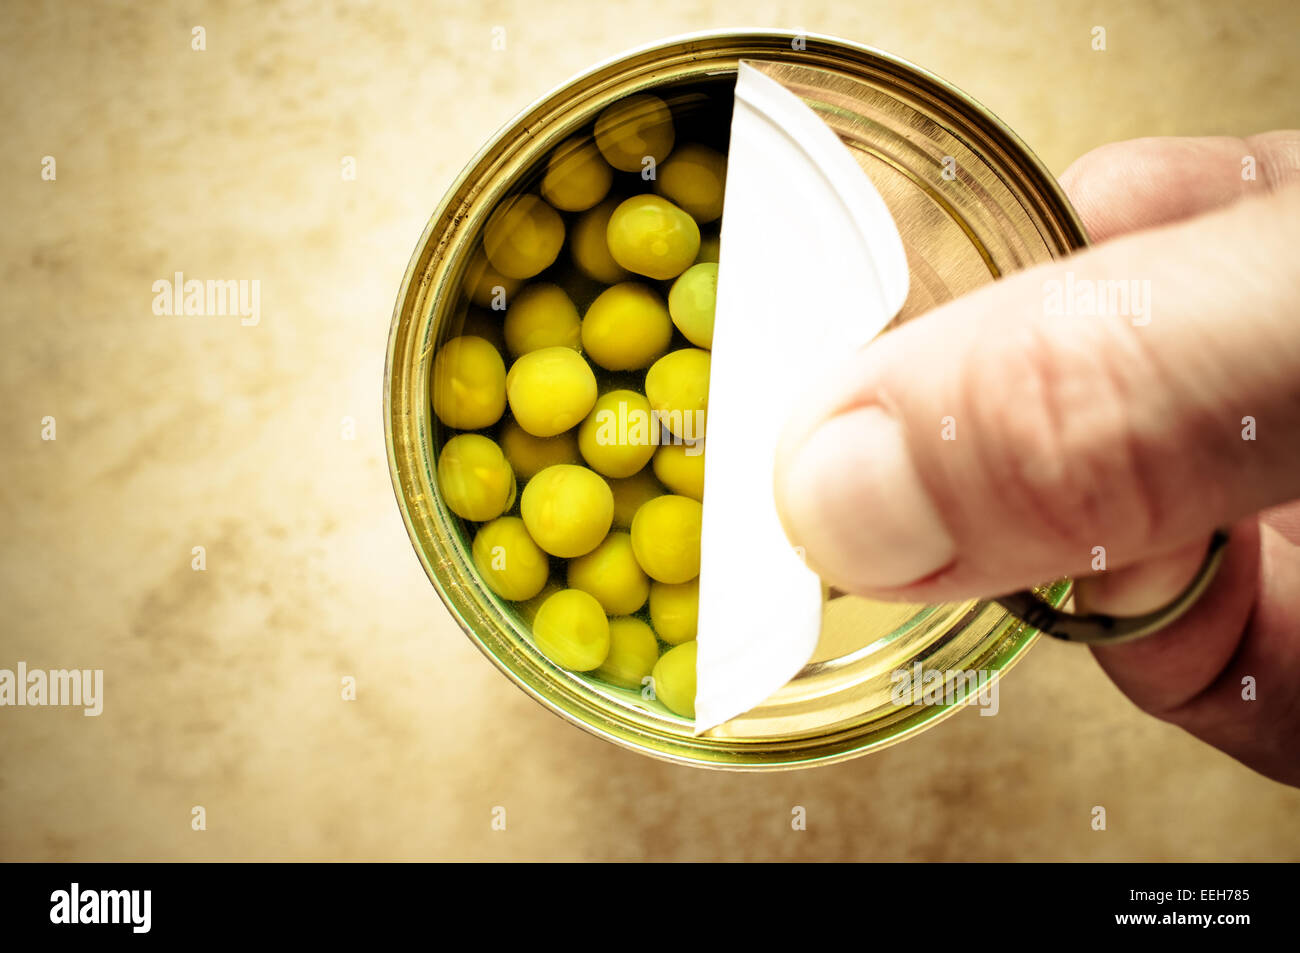 Man opens canned peas hand - Stock Image